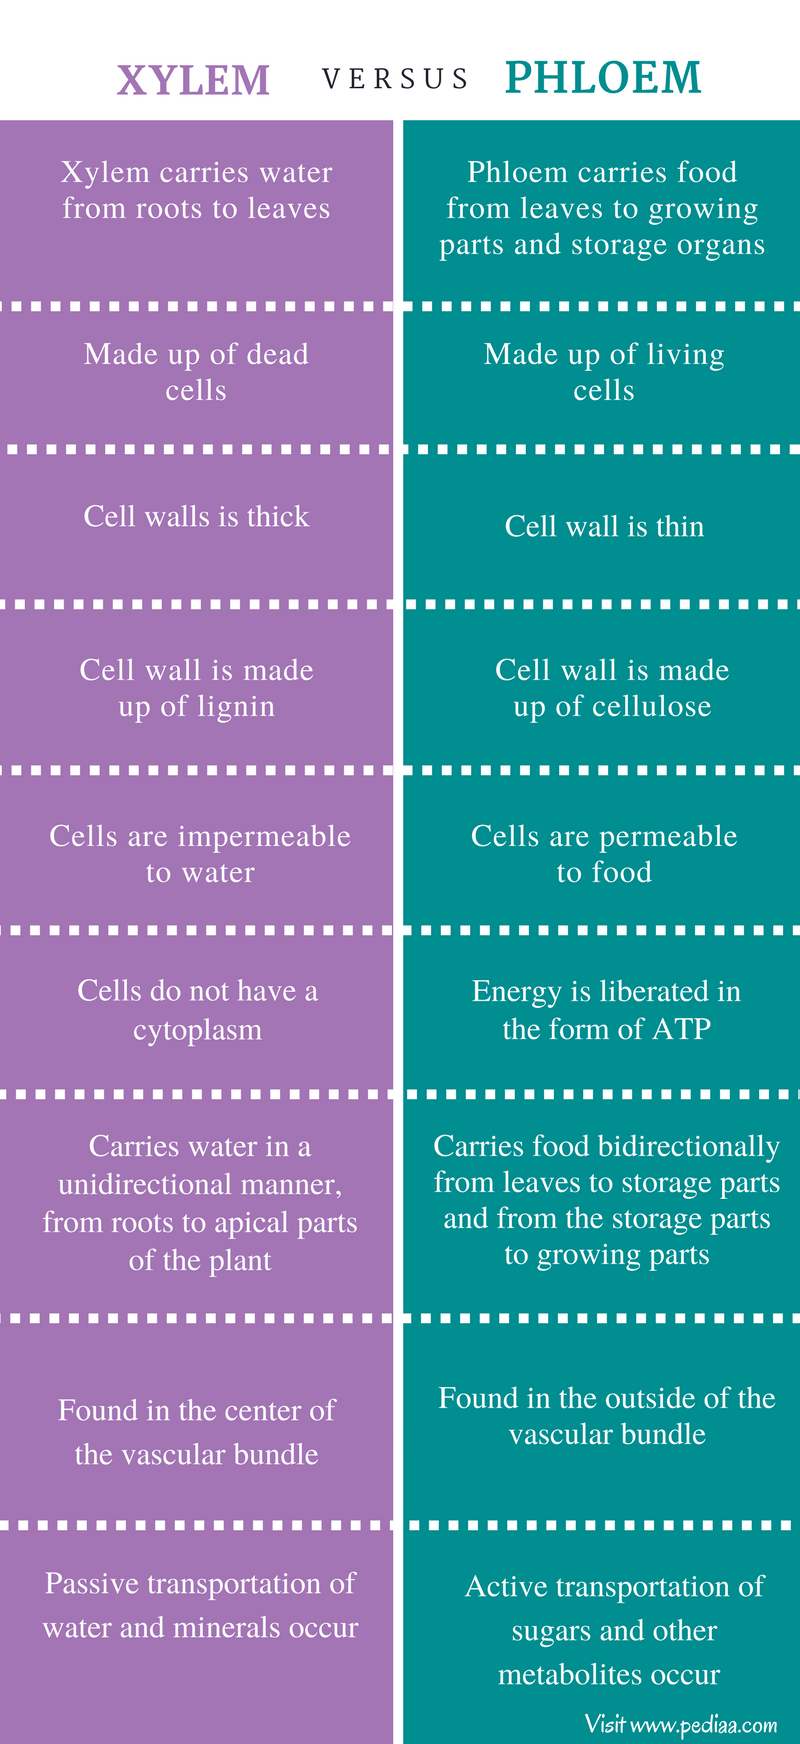 Difference Between Xylem and Phloem - Comparison Summary